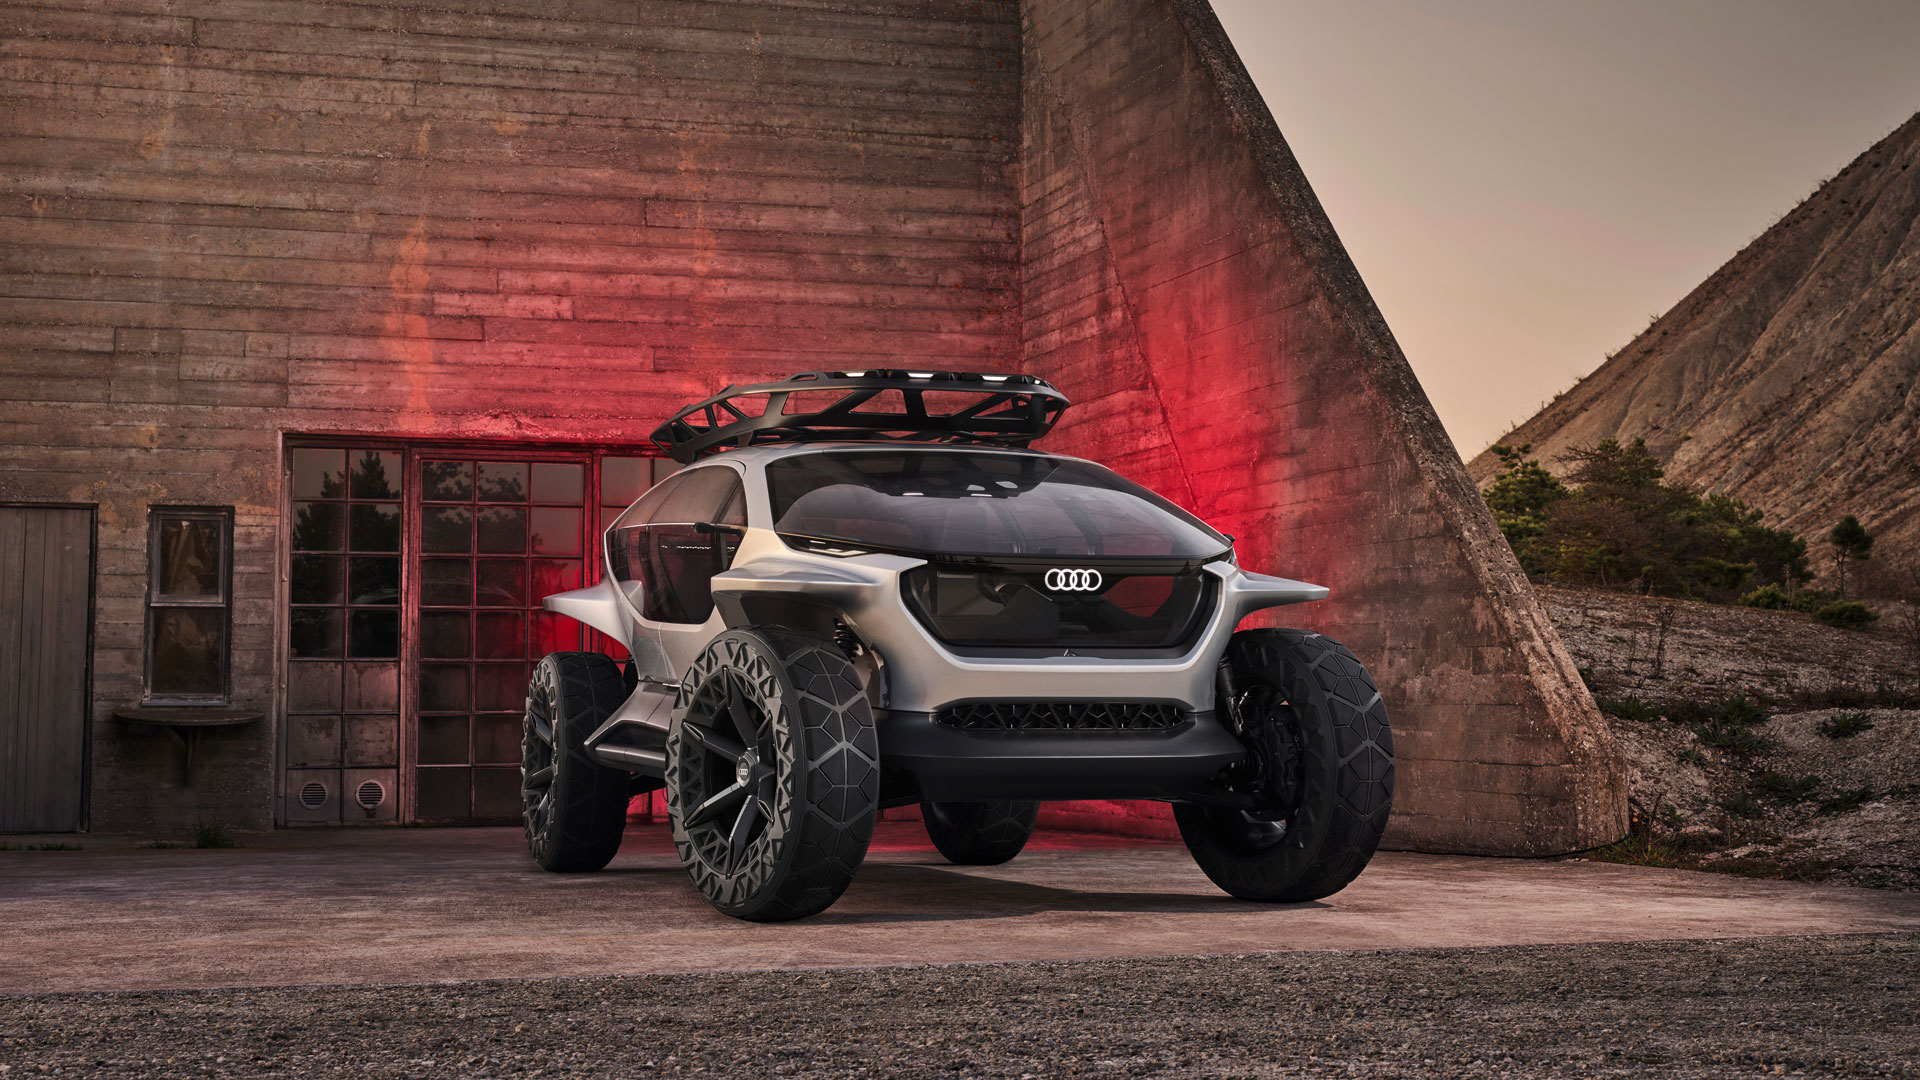 Audi has taken the wraps off the AI:Trail SUV, the fourth design study in its AI range which already includes the Aicon, AI:Me, and AI:Race (a.k.a. PB18 e-tron).